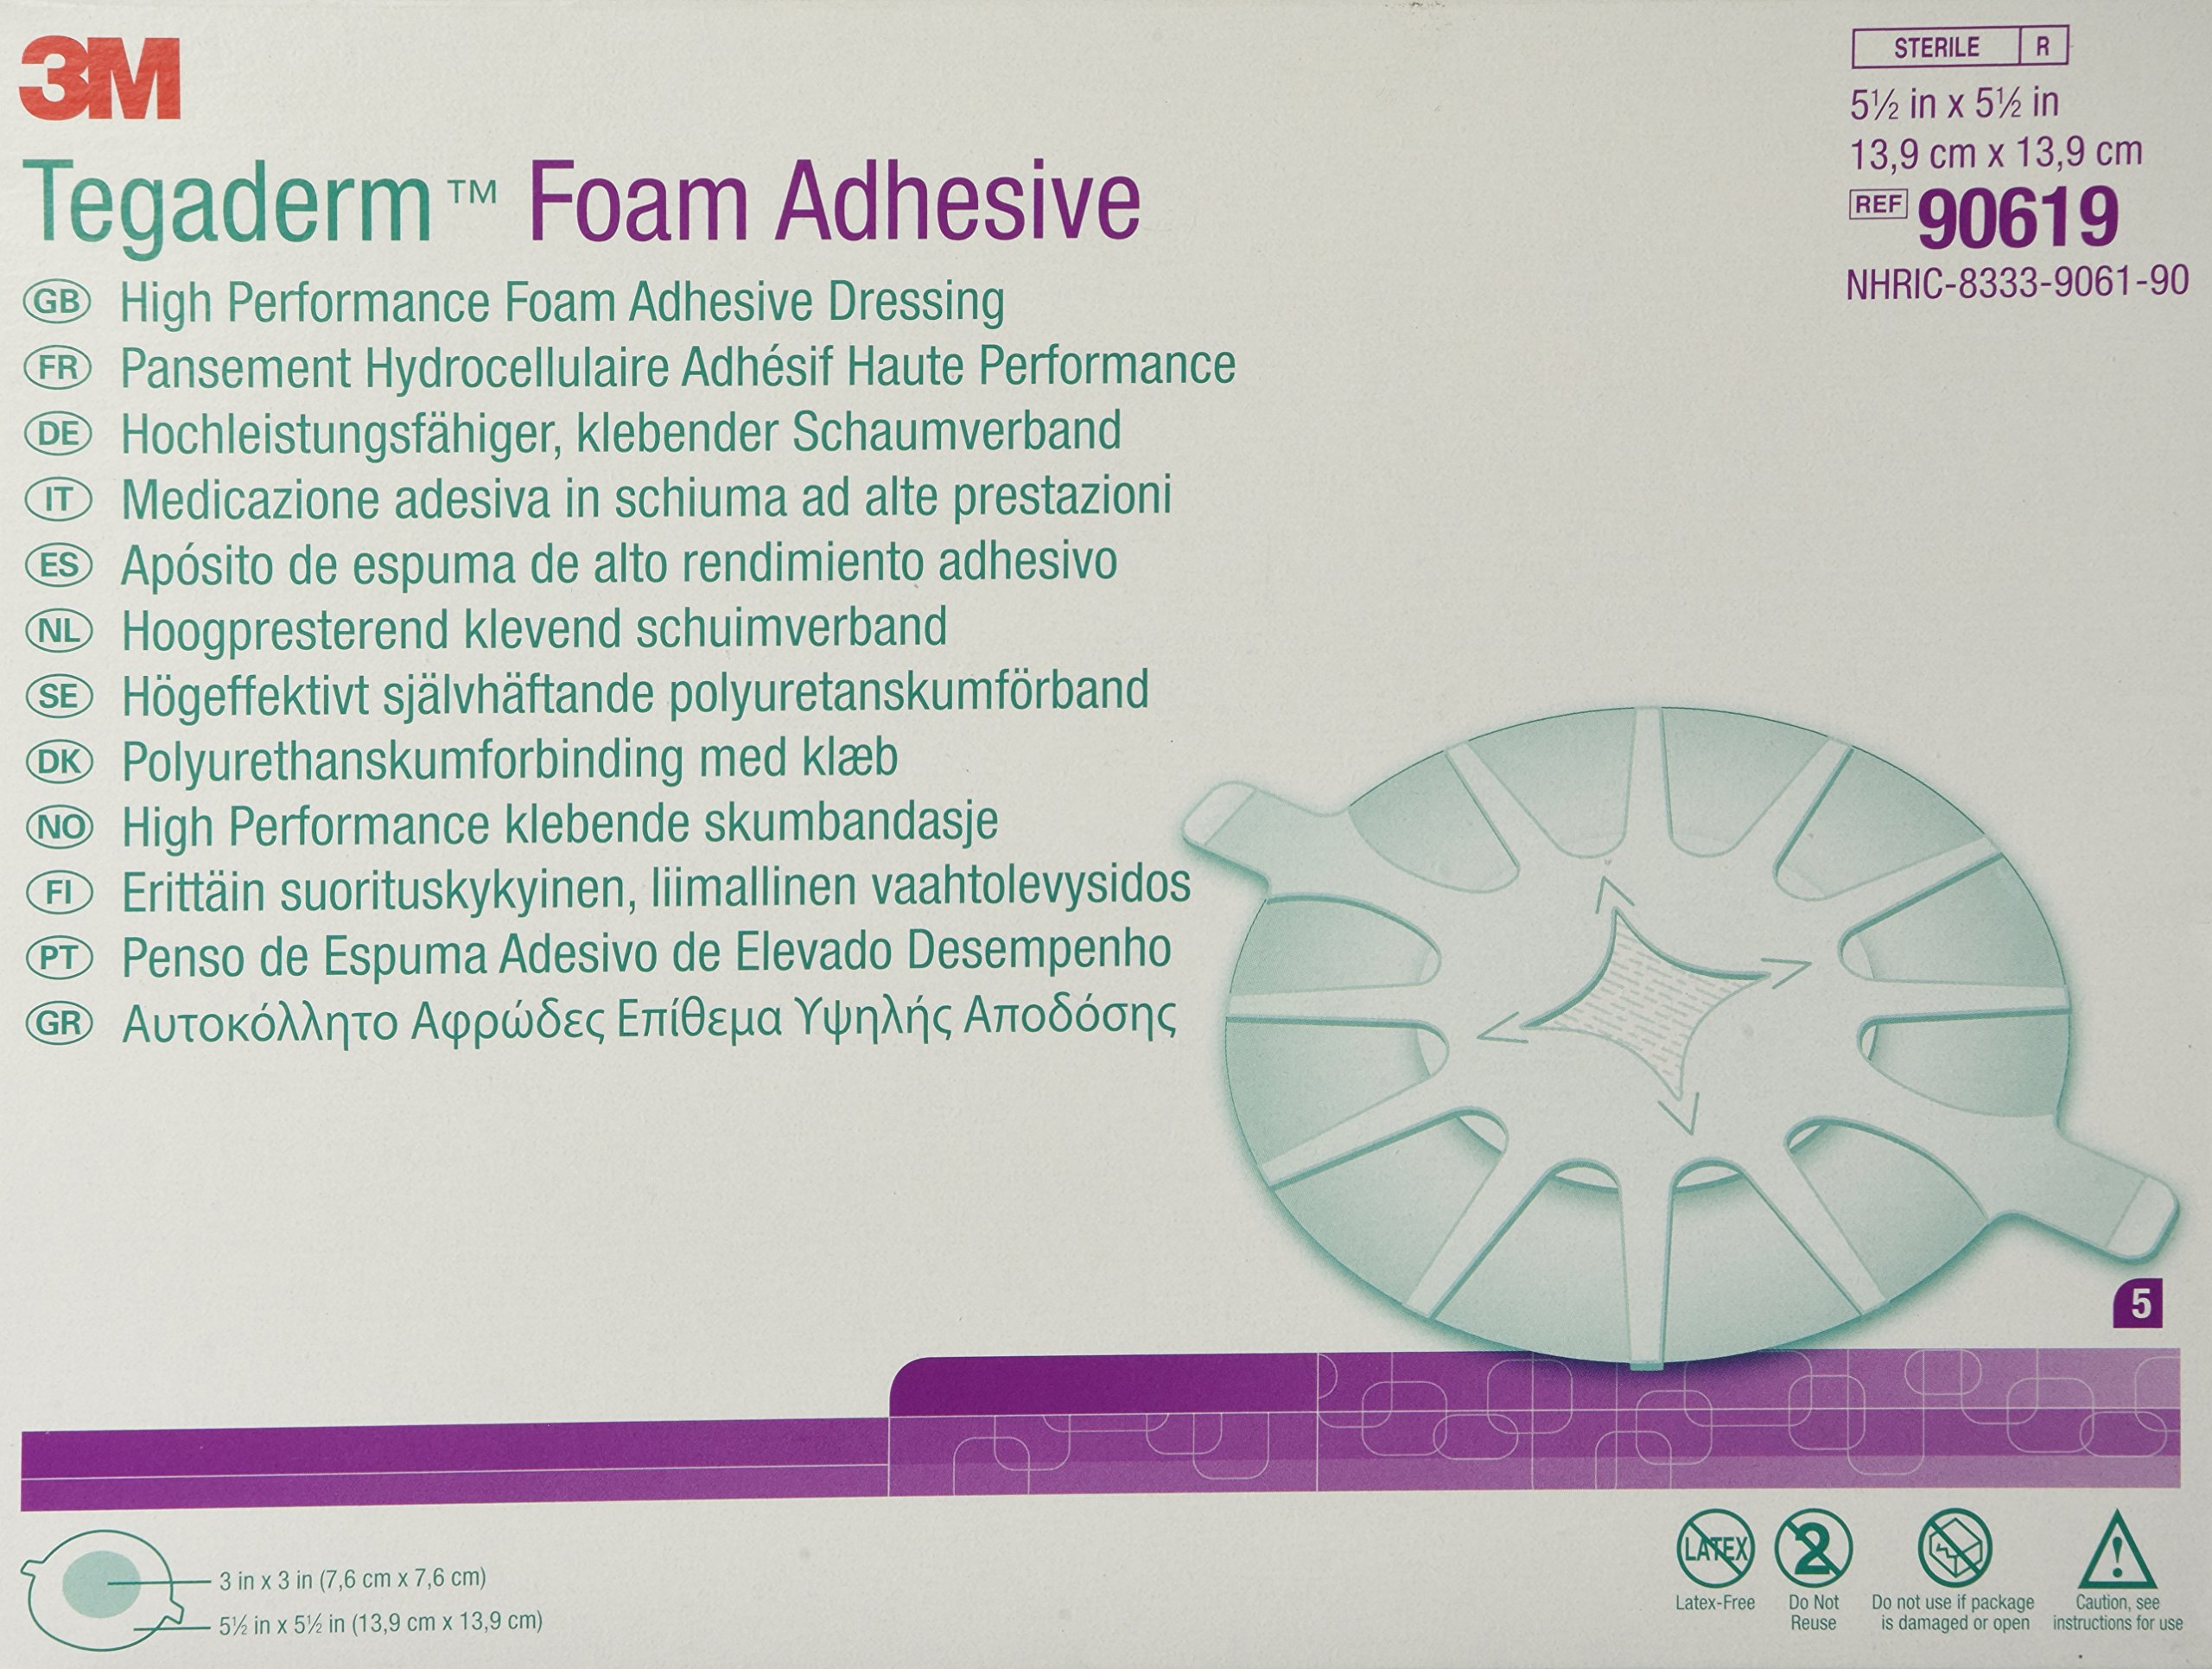 3M Tegaderm High Performance Foam Adhesive Dressing 90619, Heel Design, 5 Pads by 3M